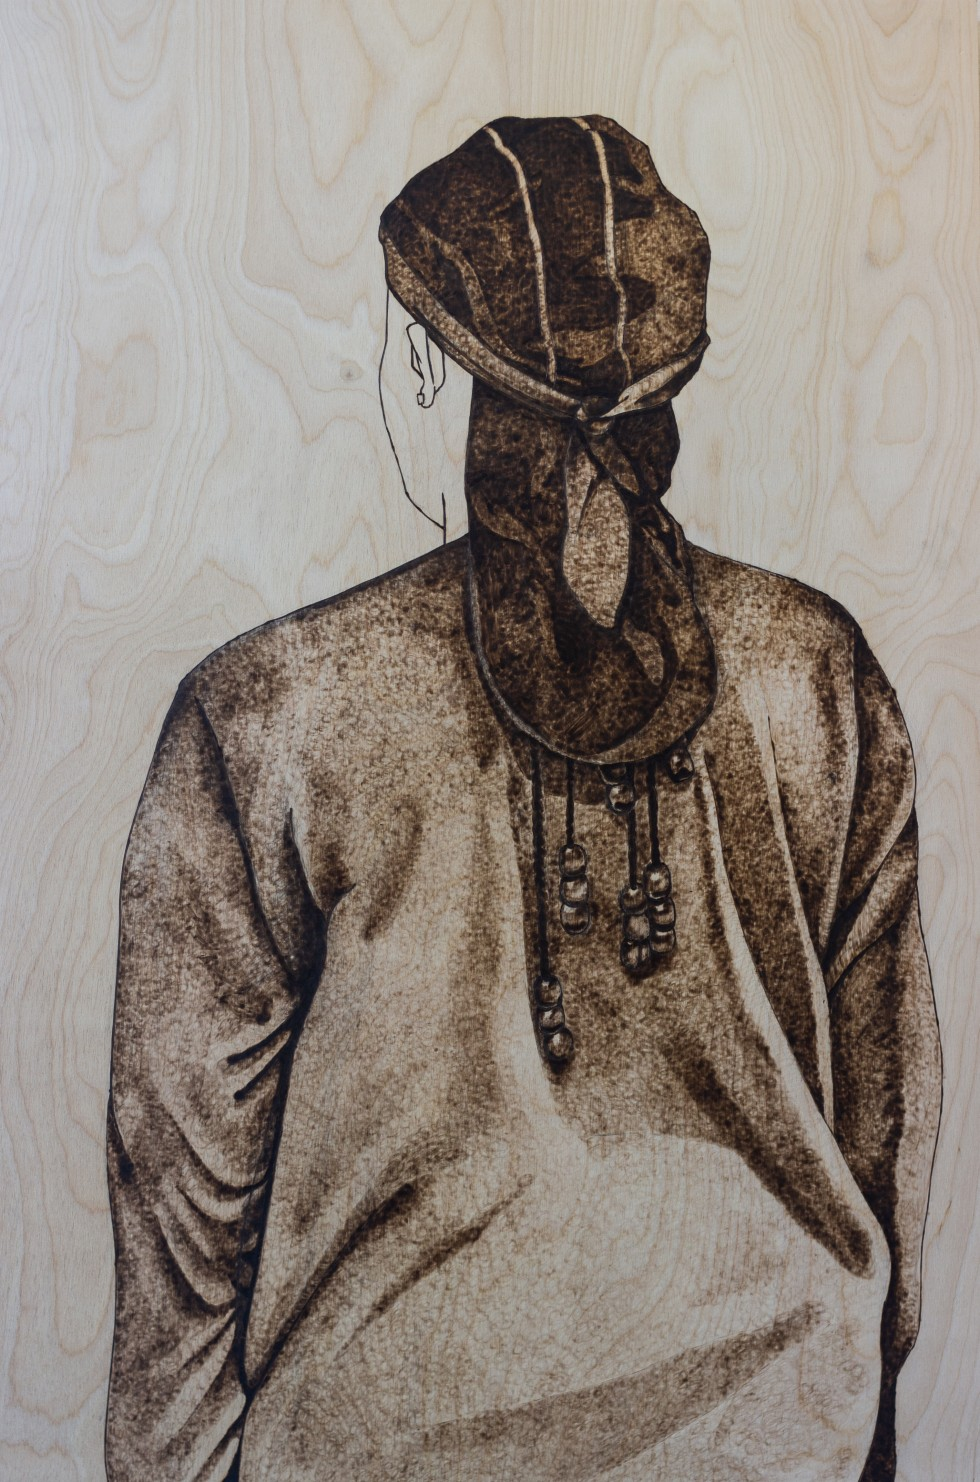 A wood burning of a figure with their back turned wearing a durag.